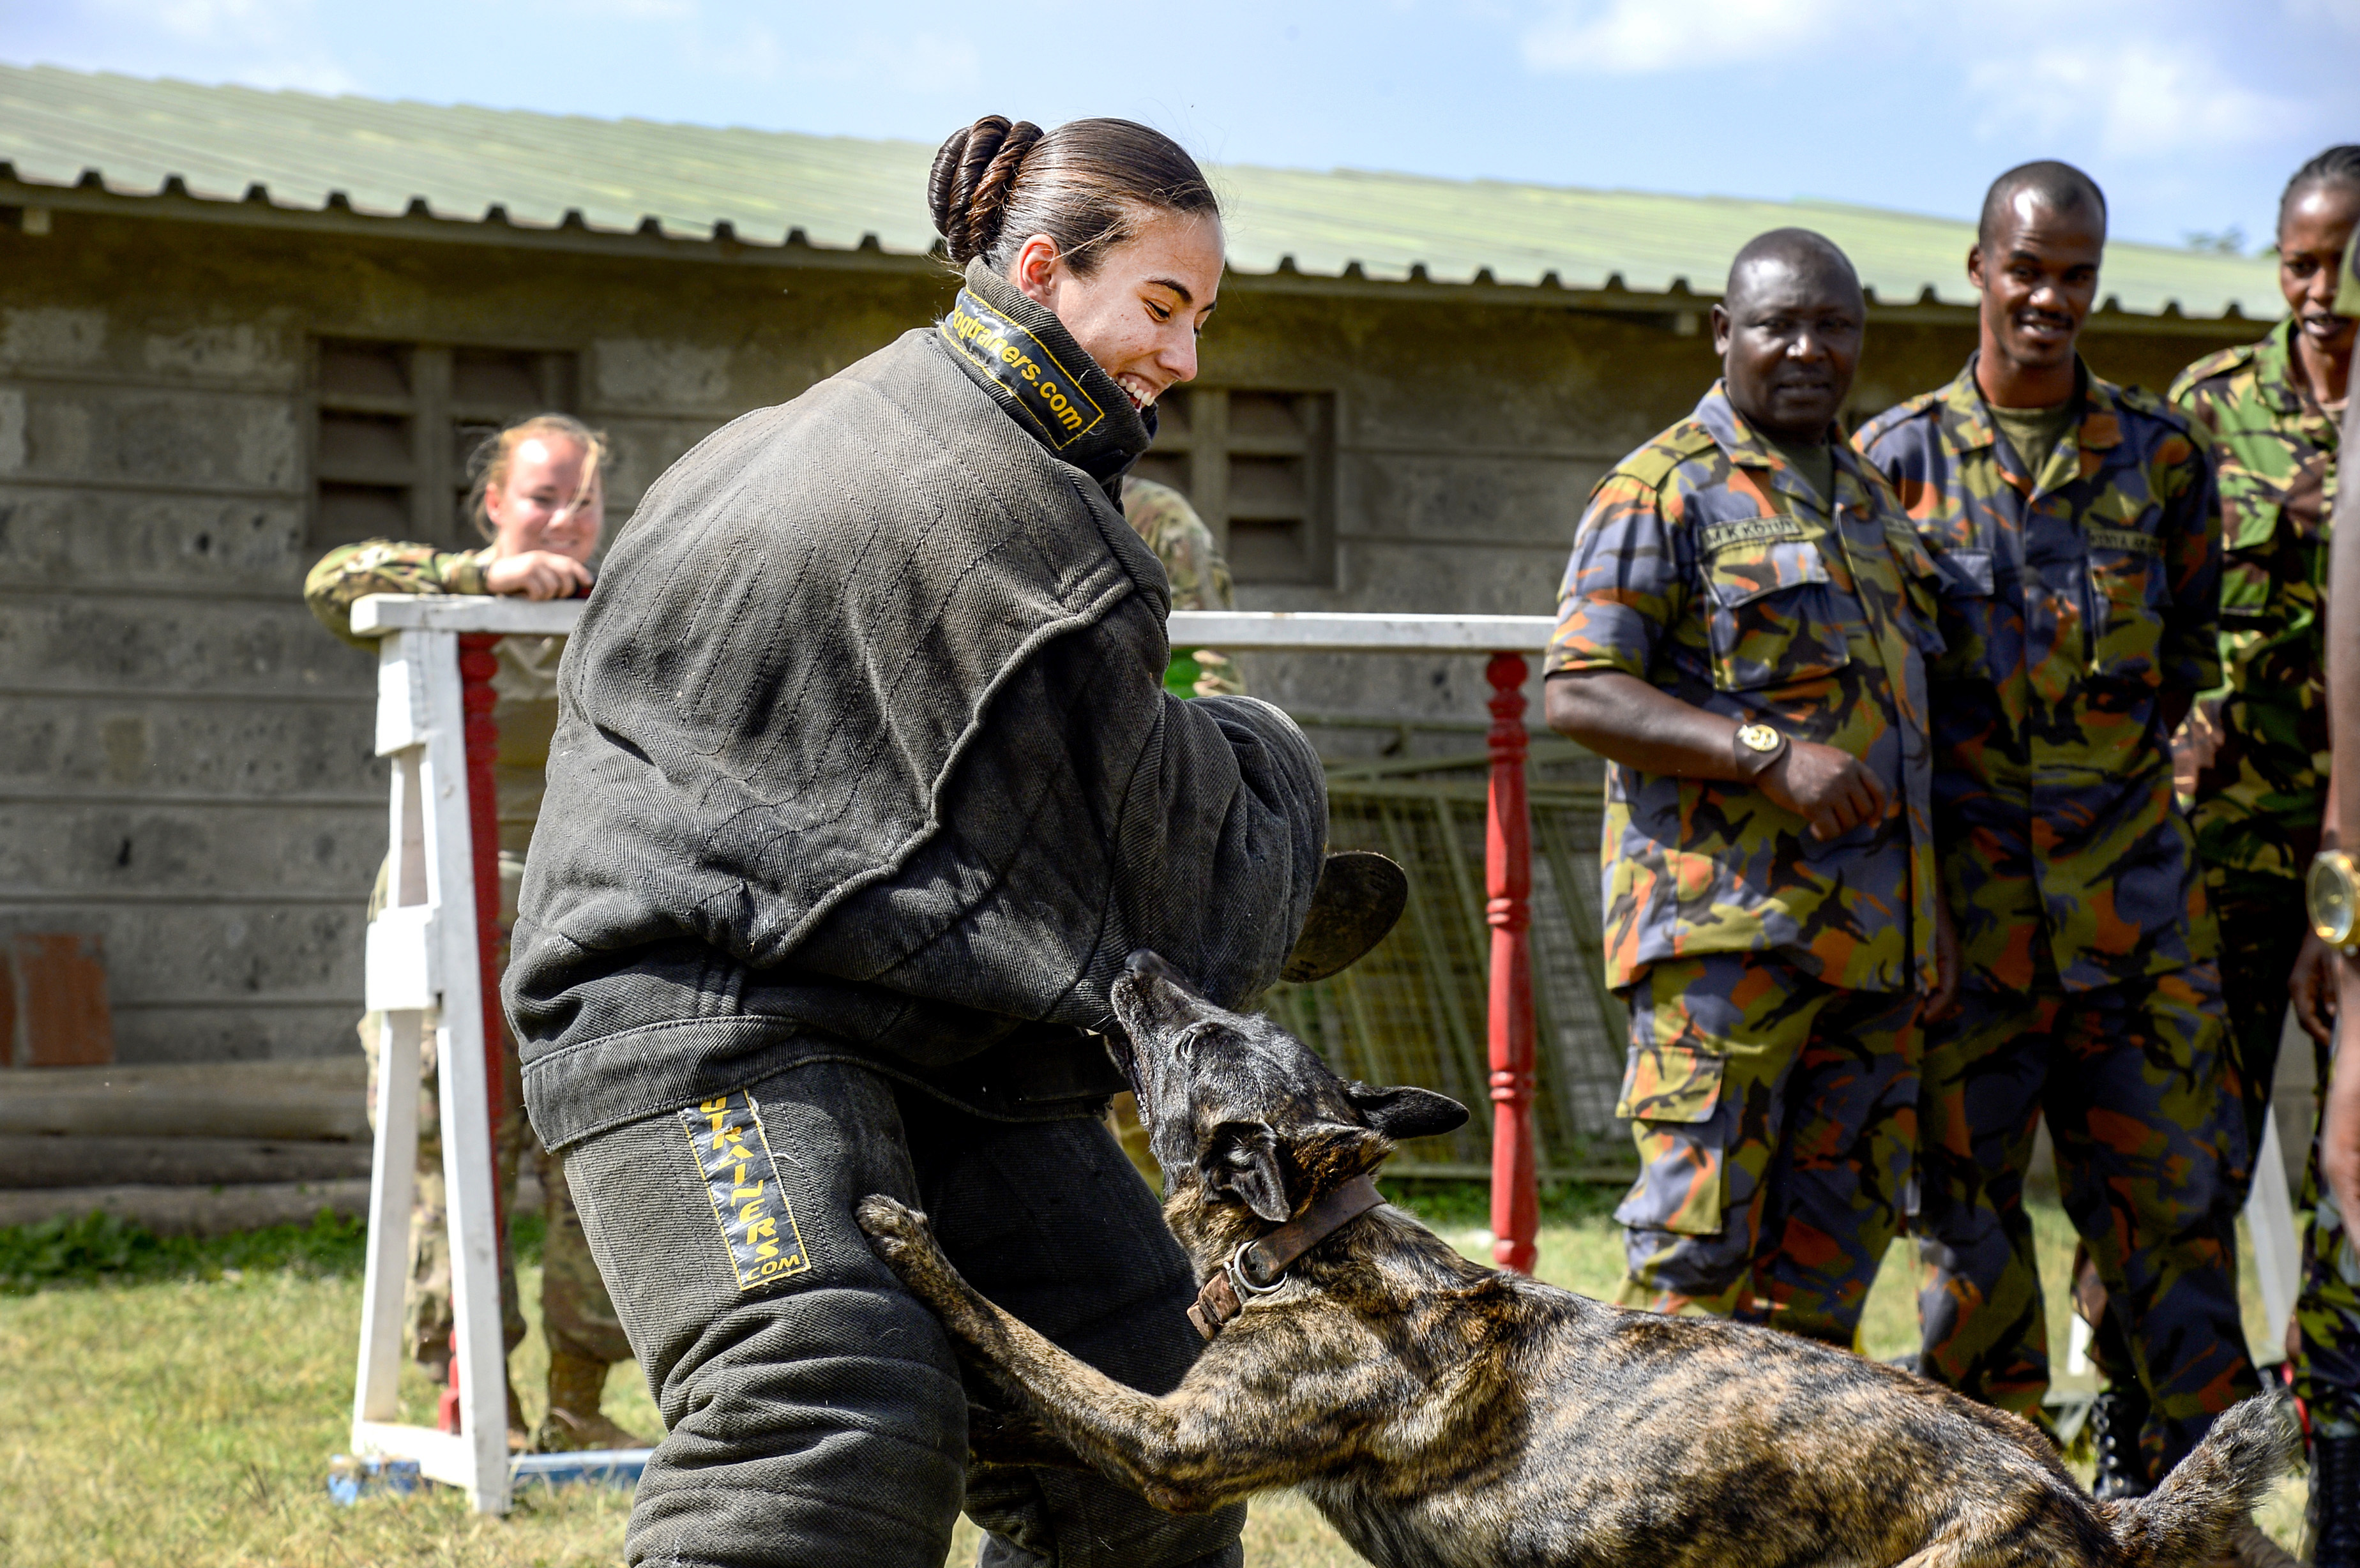 Master at Arms 1st Class Kristina Vargas, the Kennel Master assigned to Camp Lemonnier, conducts patrol work and demonstrates different techniques for members of the Kenyan Defense Force's 1st Canine Regiment during a Military Working Dog knowledge exchange, in Nairobi, Kenya, August 7, 2018. The exchange gave a chance for American and Kenyan forces to learn and work with each other to have a better understanding of each other's capabilities. (U.S. Navy Photo by Mass Communication Specialist 2nd Class Timothy M. Ahearn)